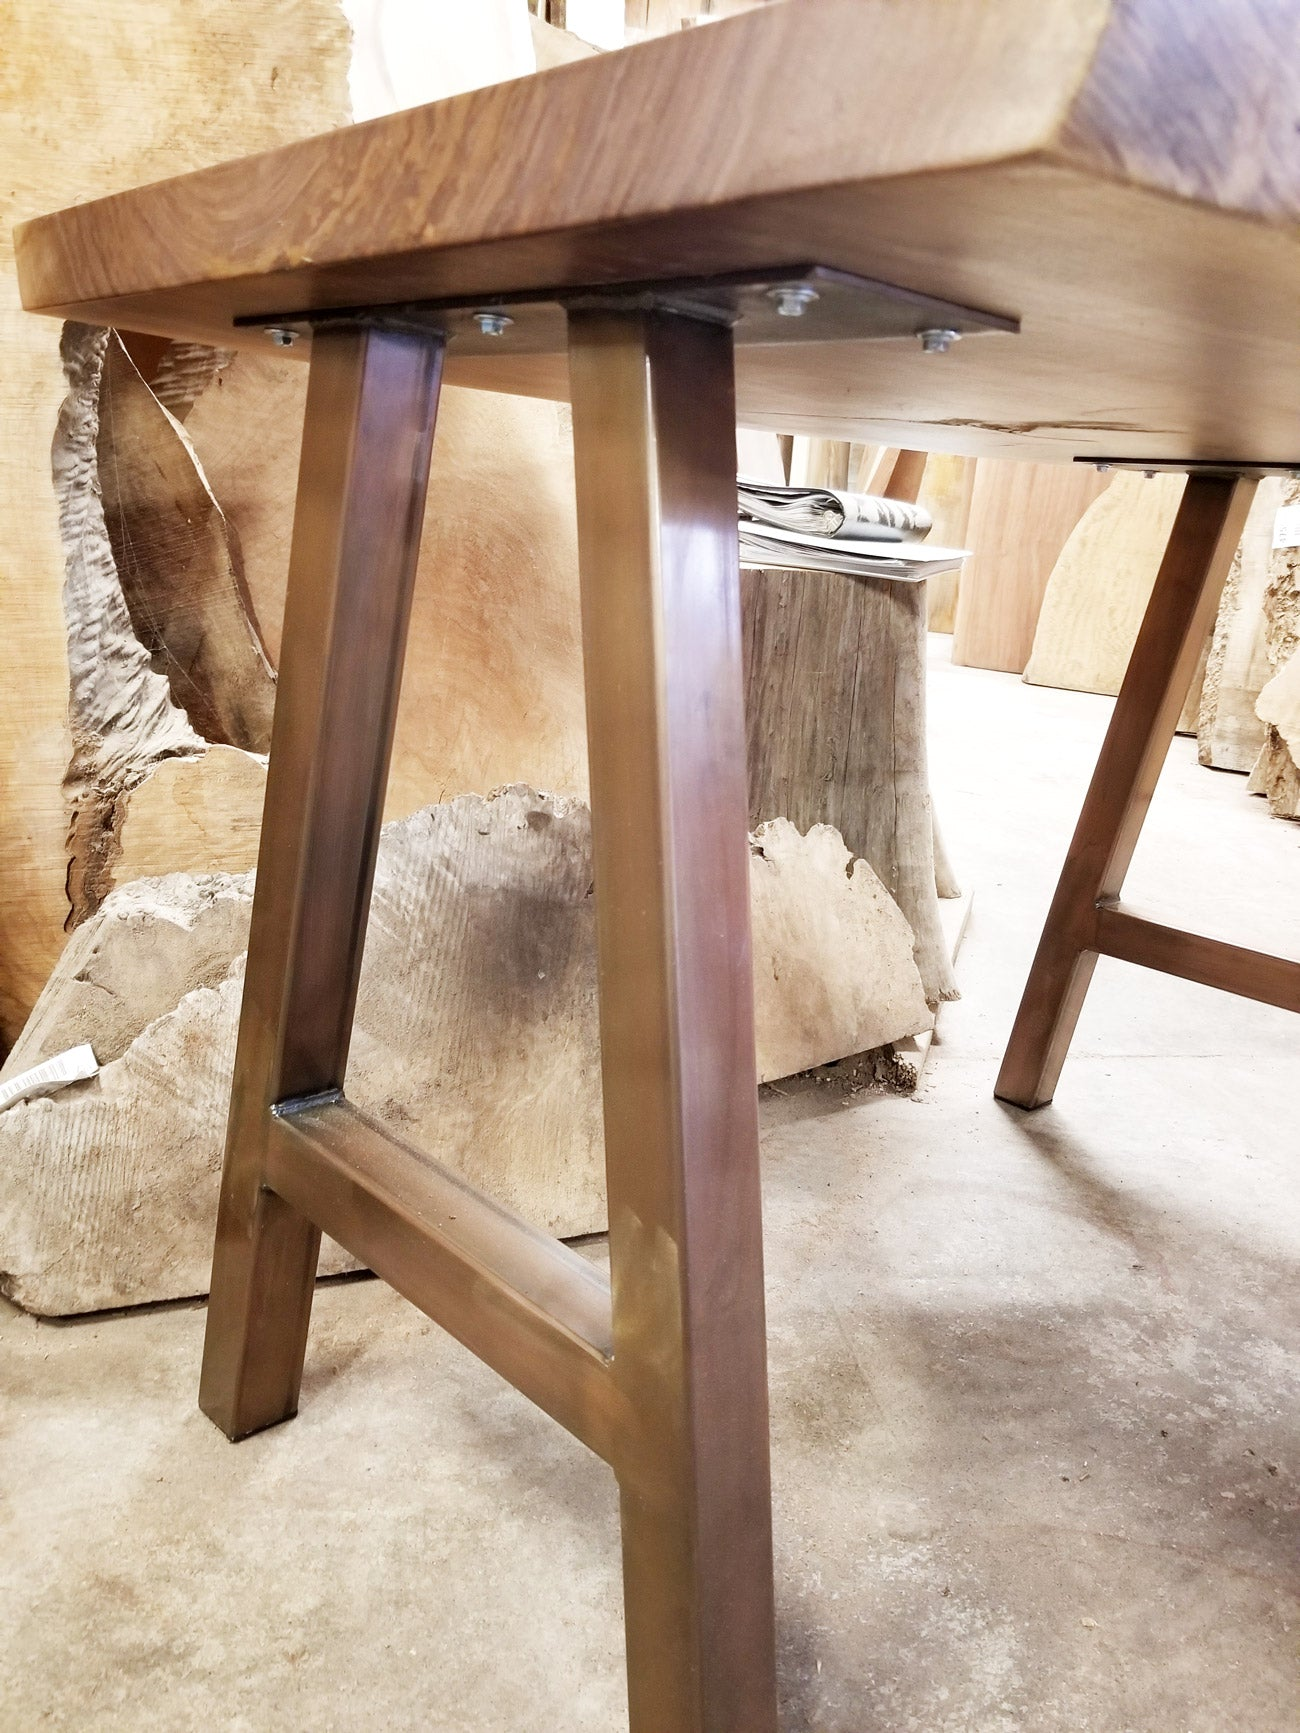 A-frame table legs in Copper Patina